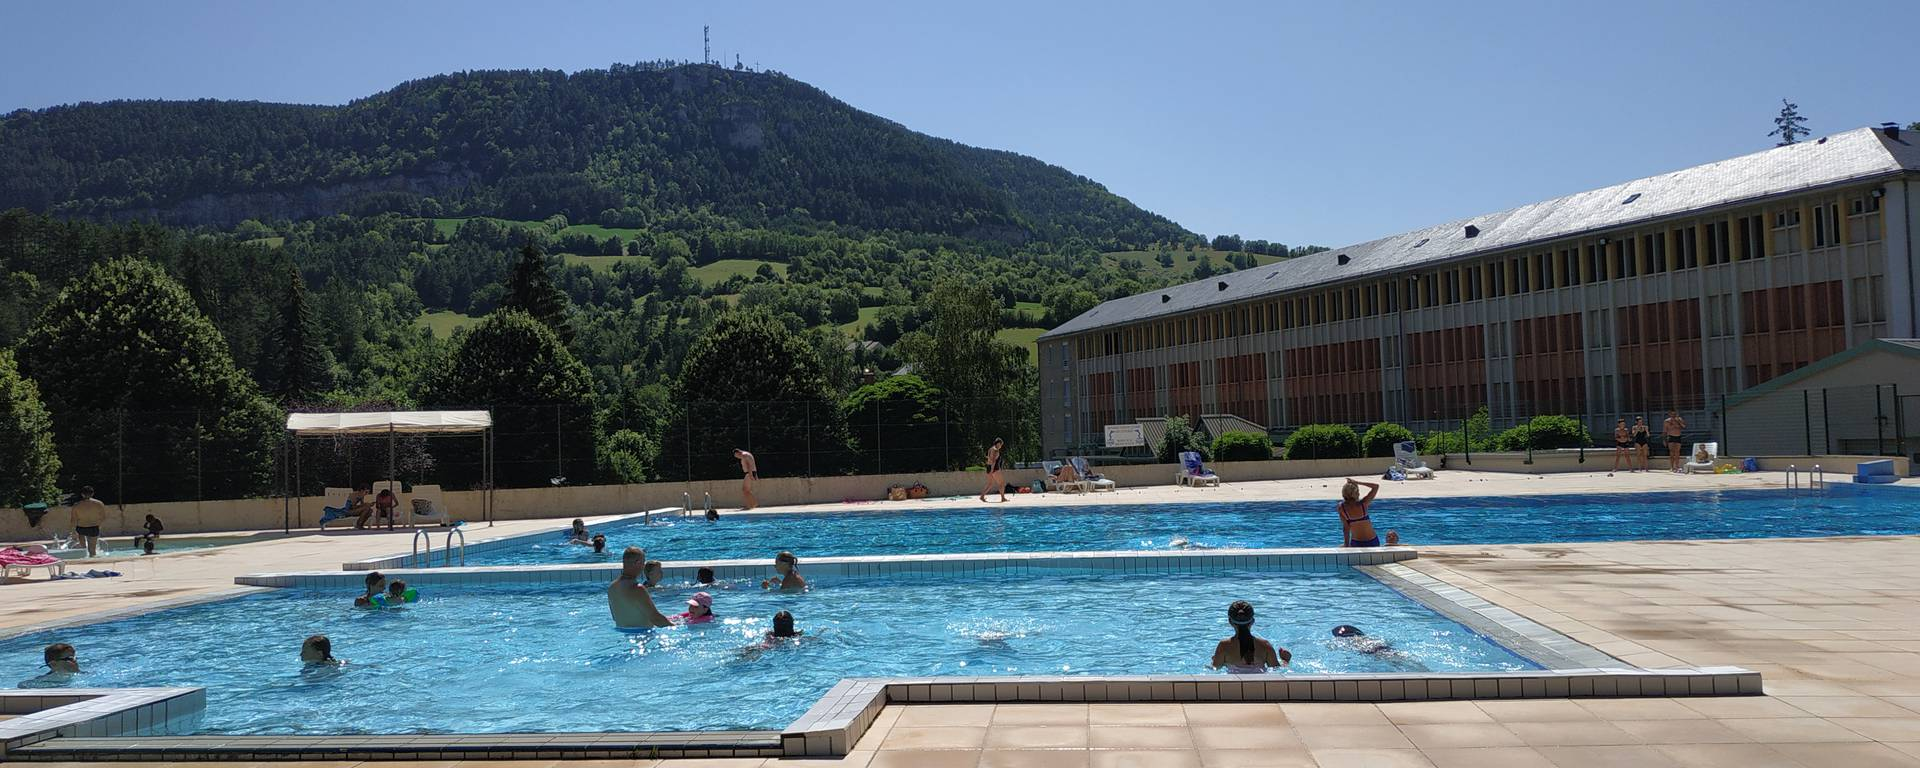 La Canourgue's swimming pool